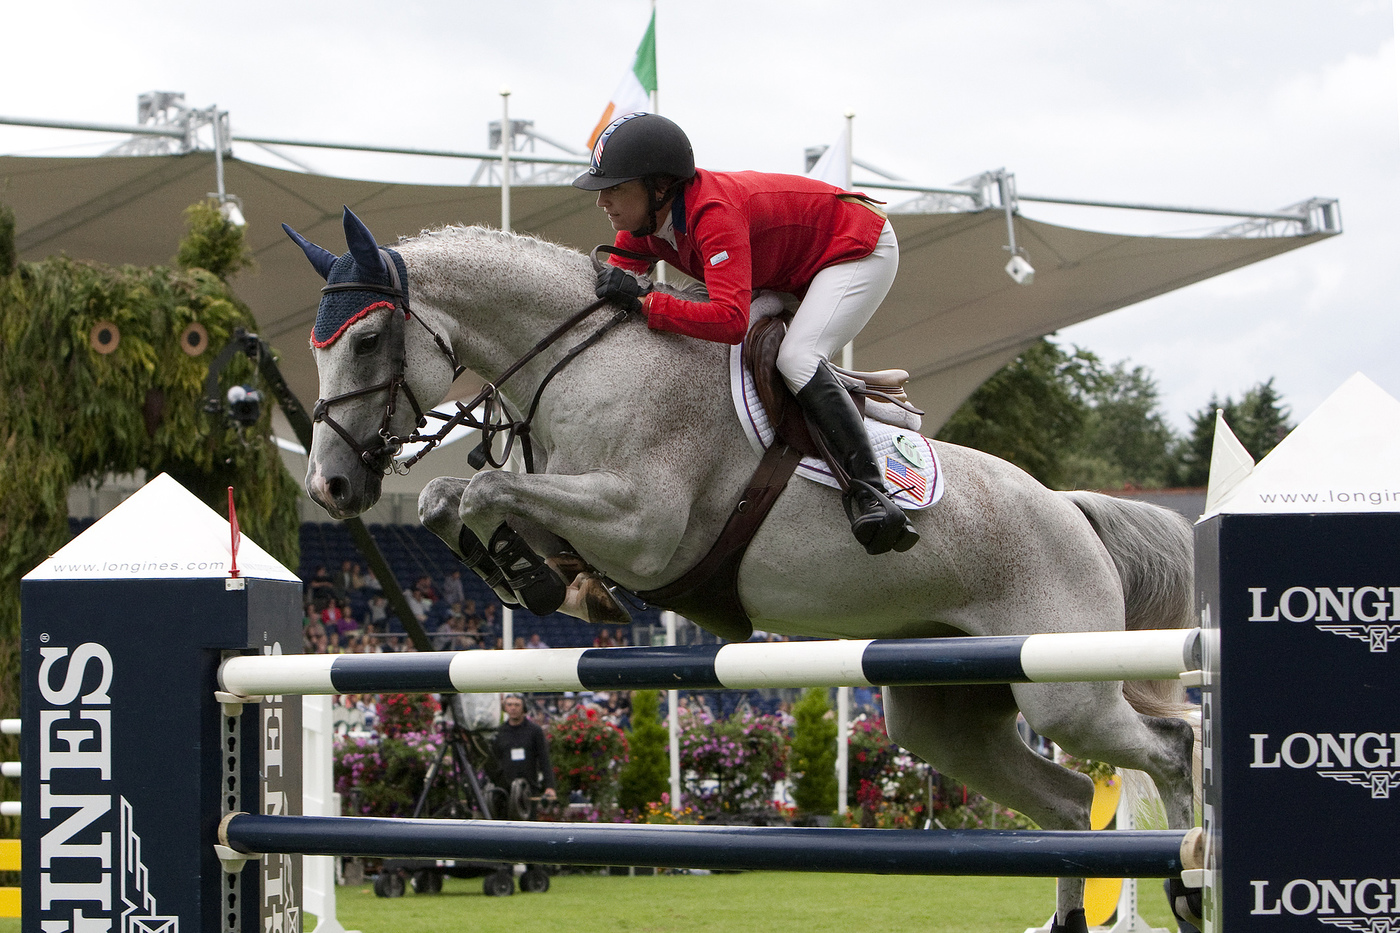 Longines Show Jumping Event: CSIO Dublin - The winners of the Longines Press Award for Elegance 7